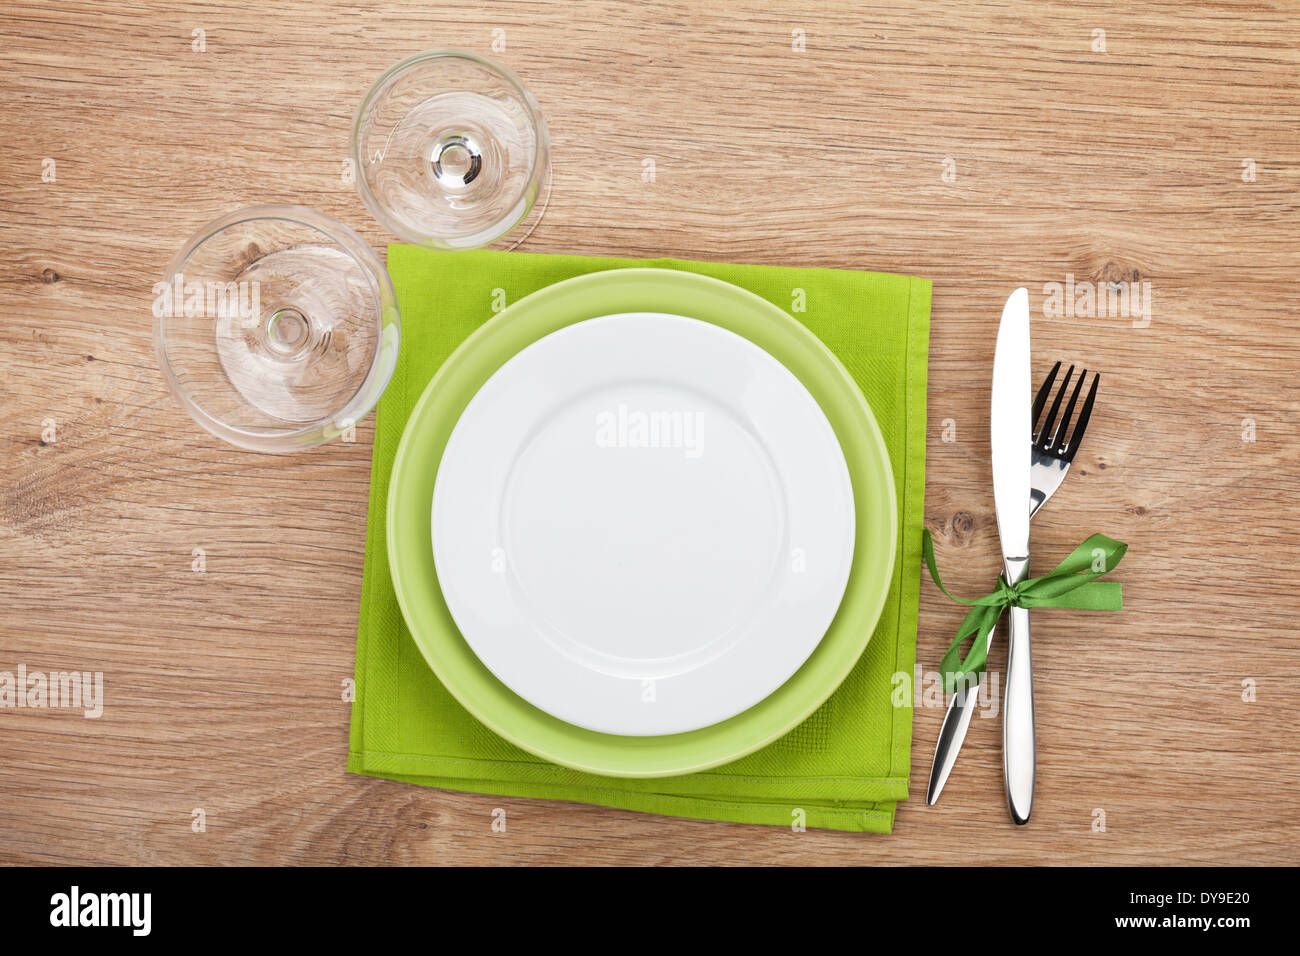 Kitchen utensils over wooden table with copyspace - Stock Image